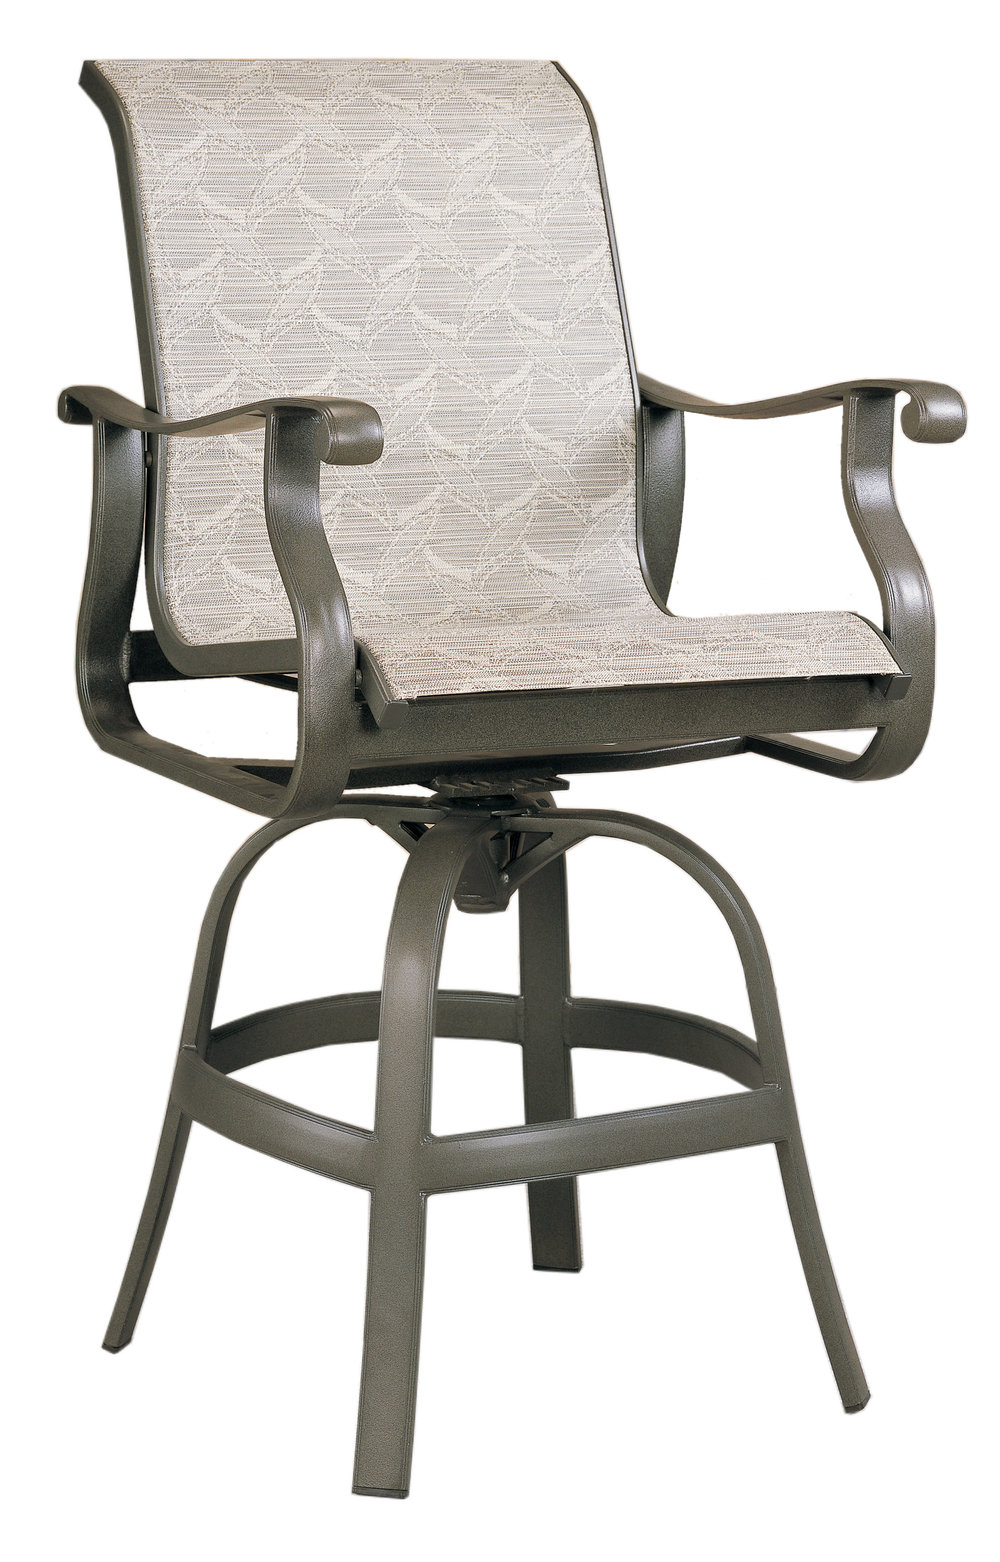 "970512 Mandalay Swivel Bar Chair   25.5"" x 39.2"" x 47.8"""